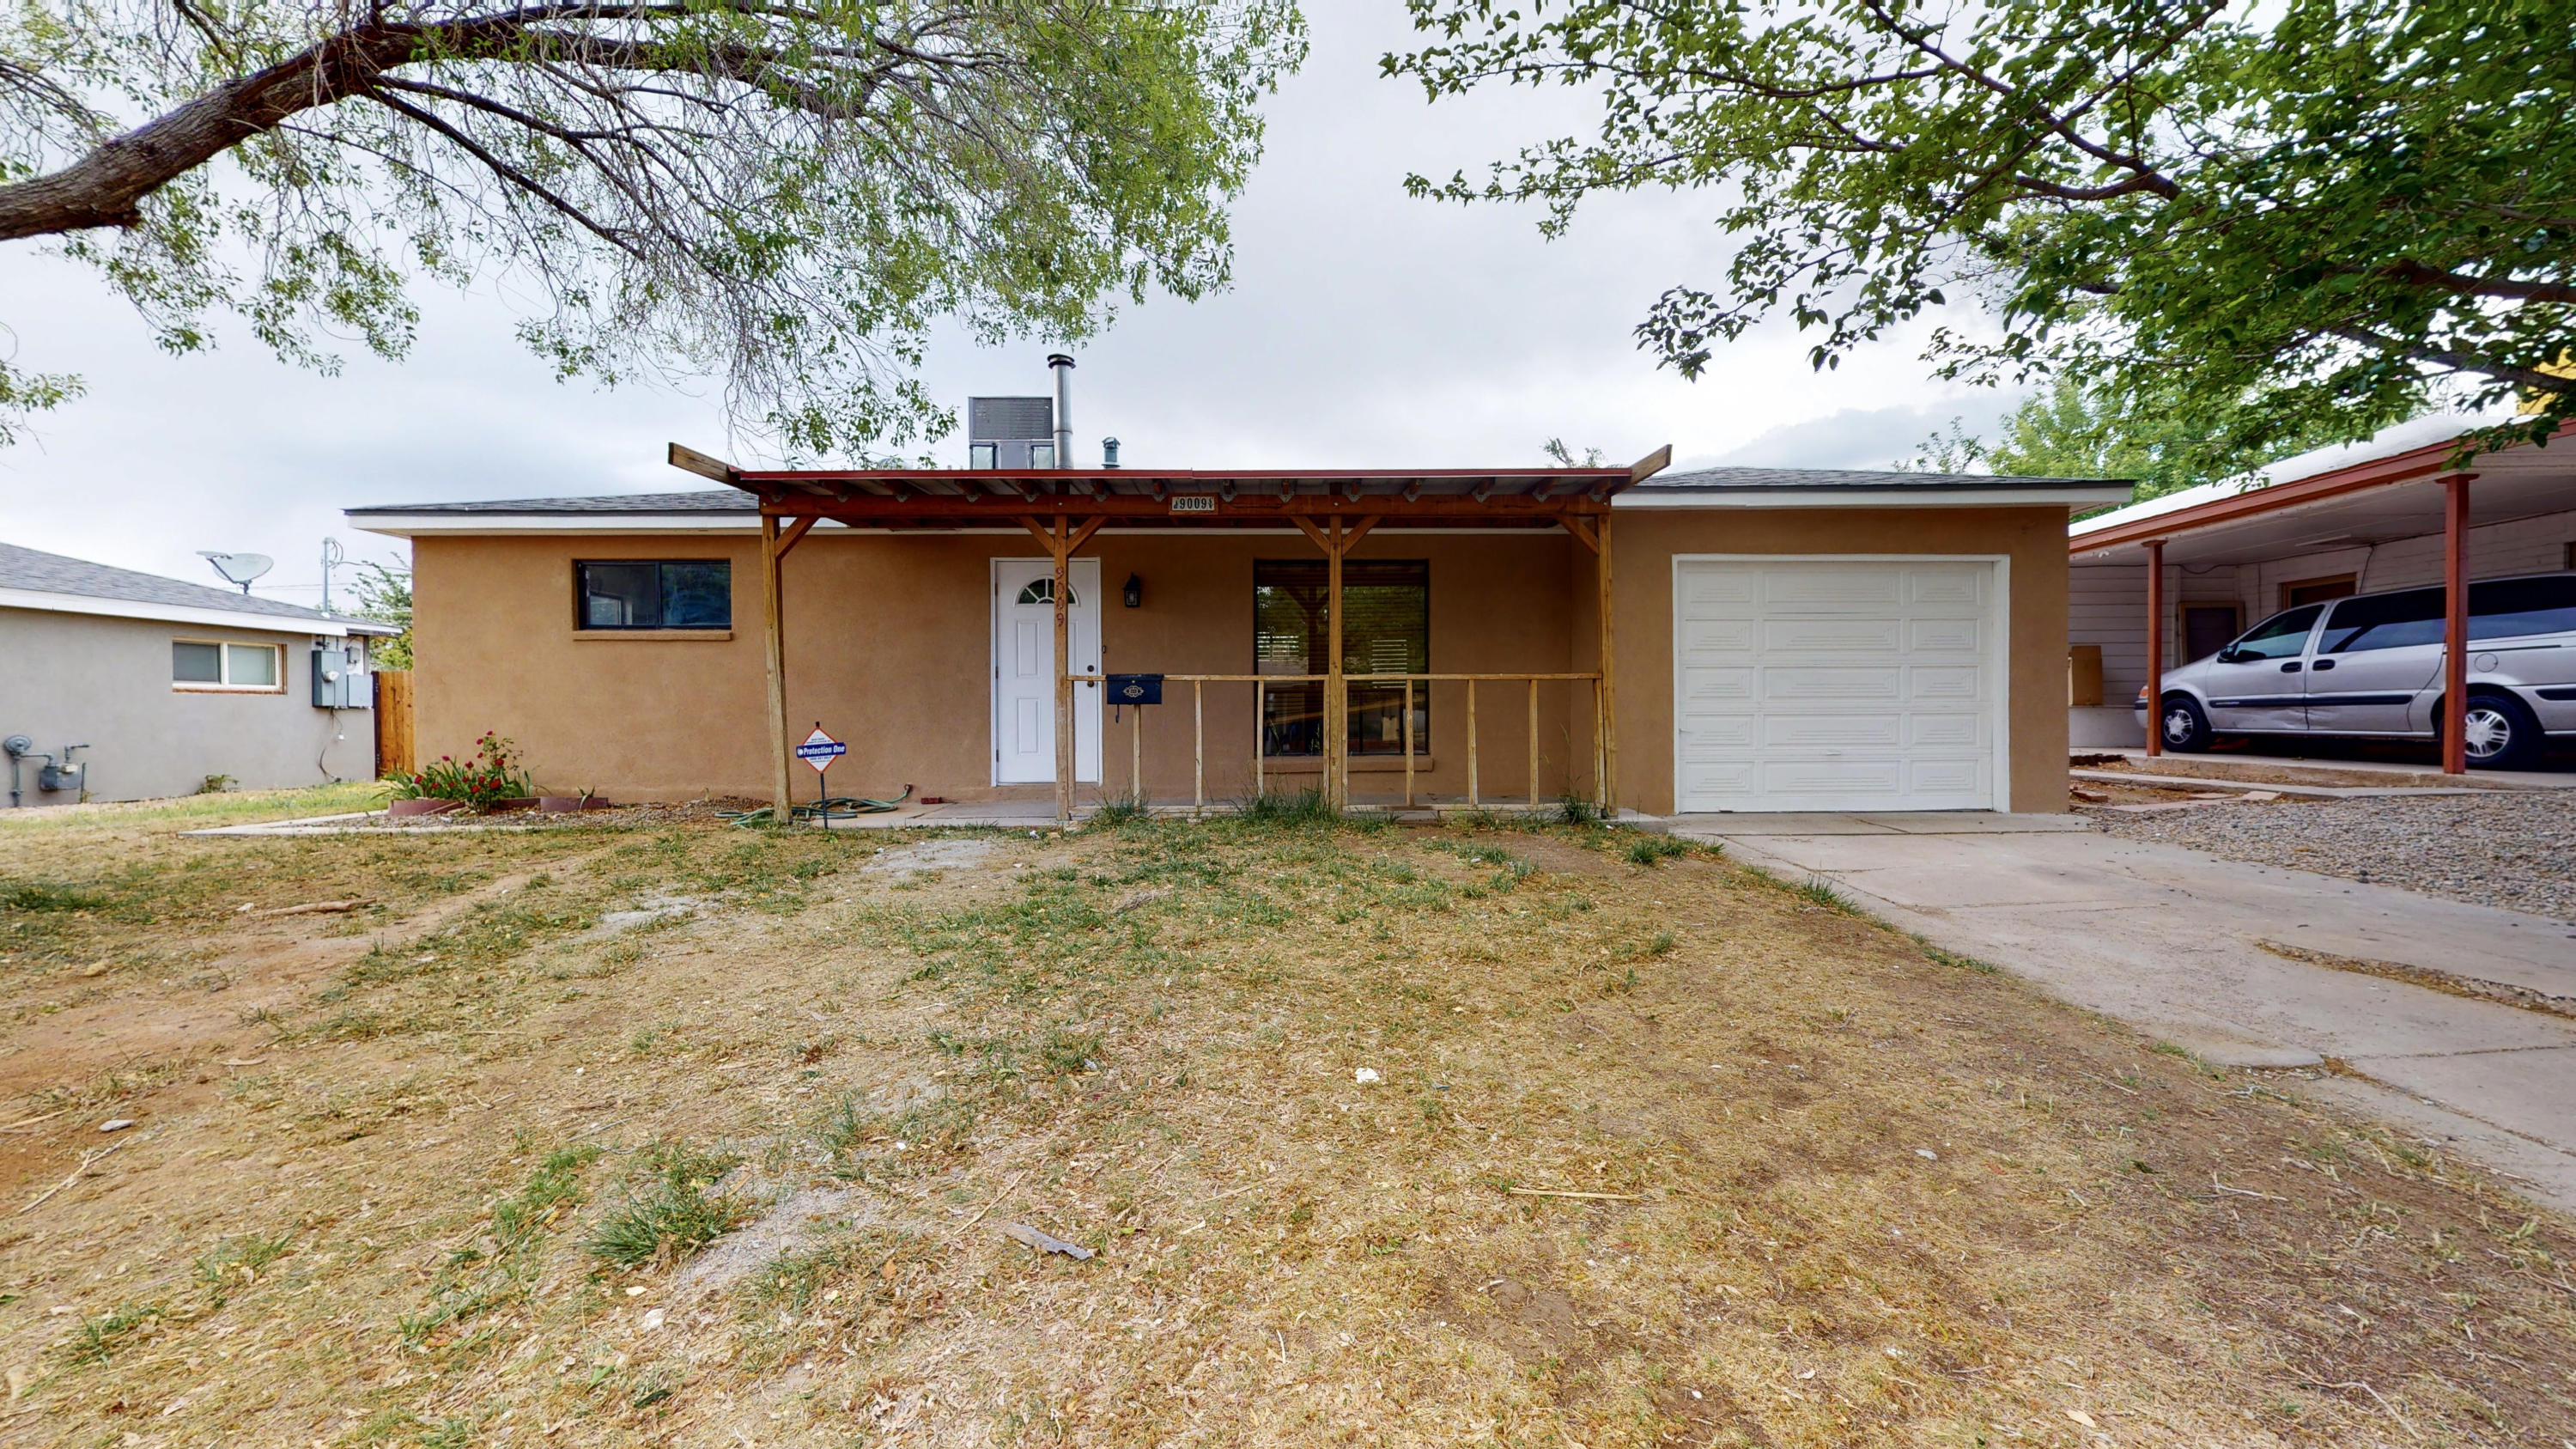 9009 PHOENIX Avenue NE, Albuquerque, NM 87112 - Albuquerque, NM real estate listing